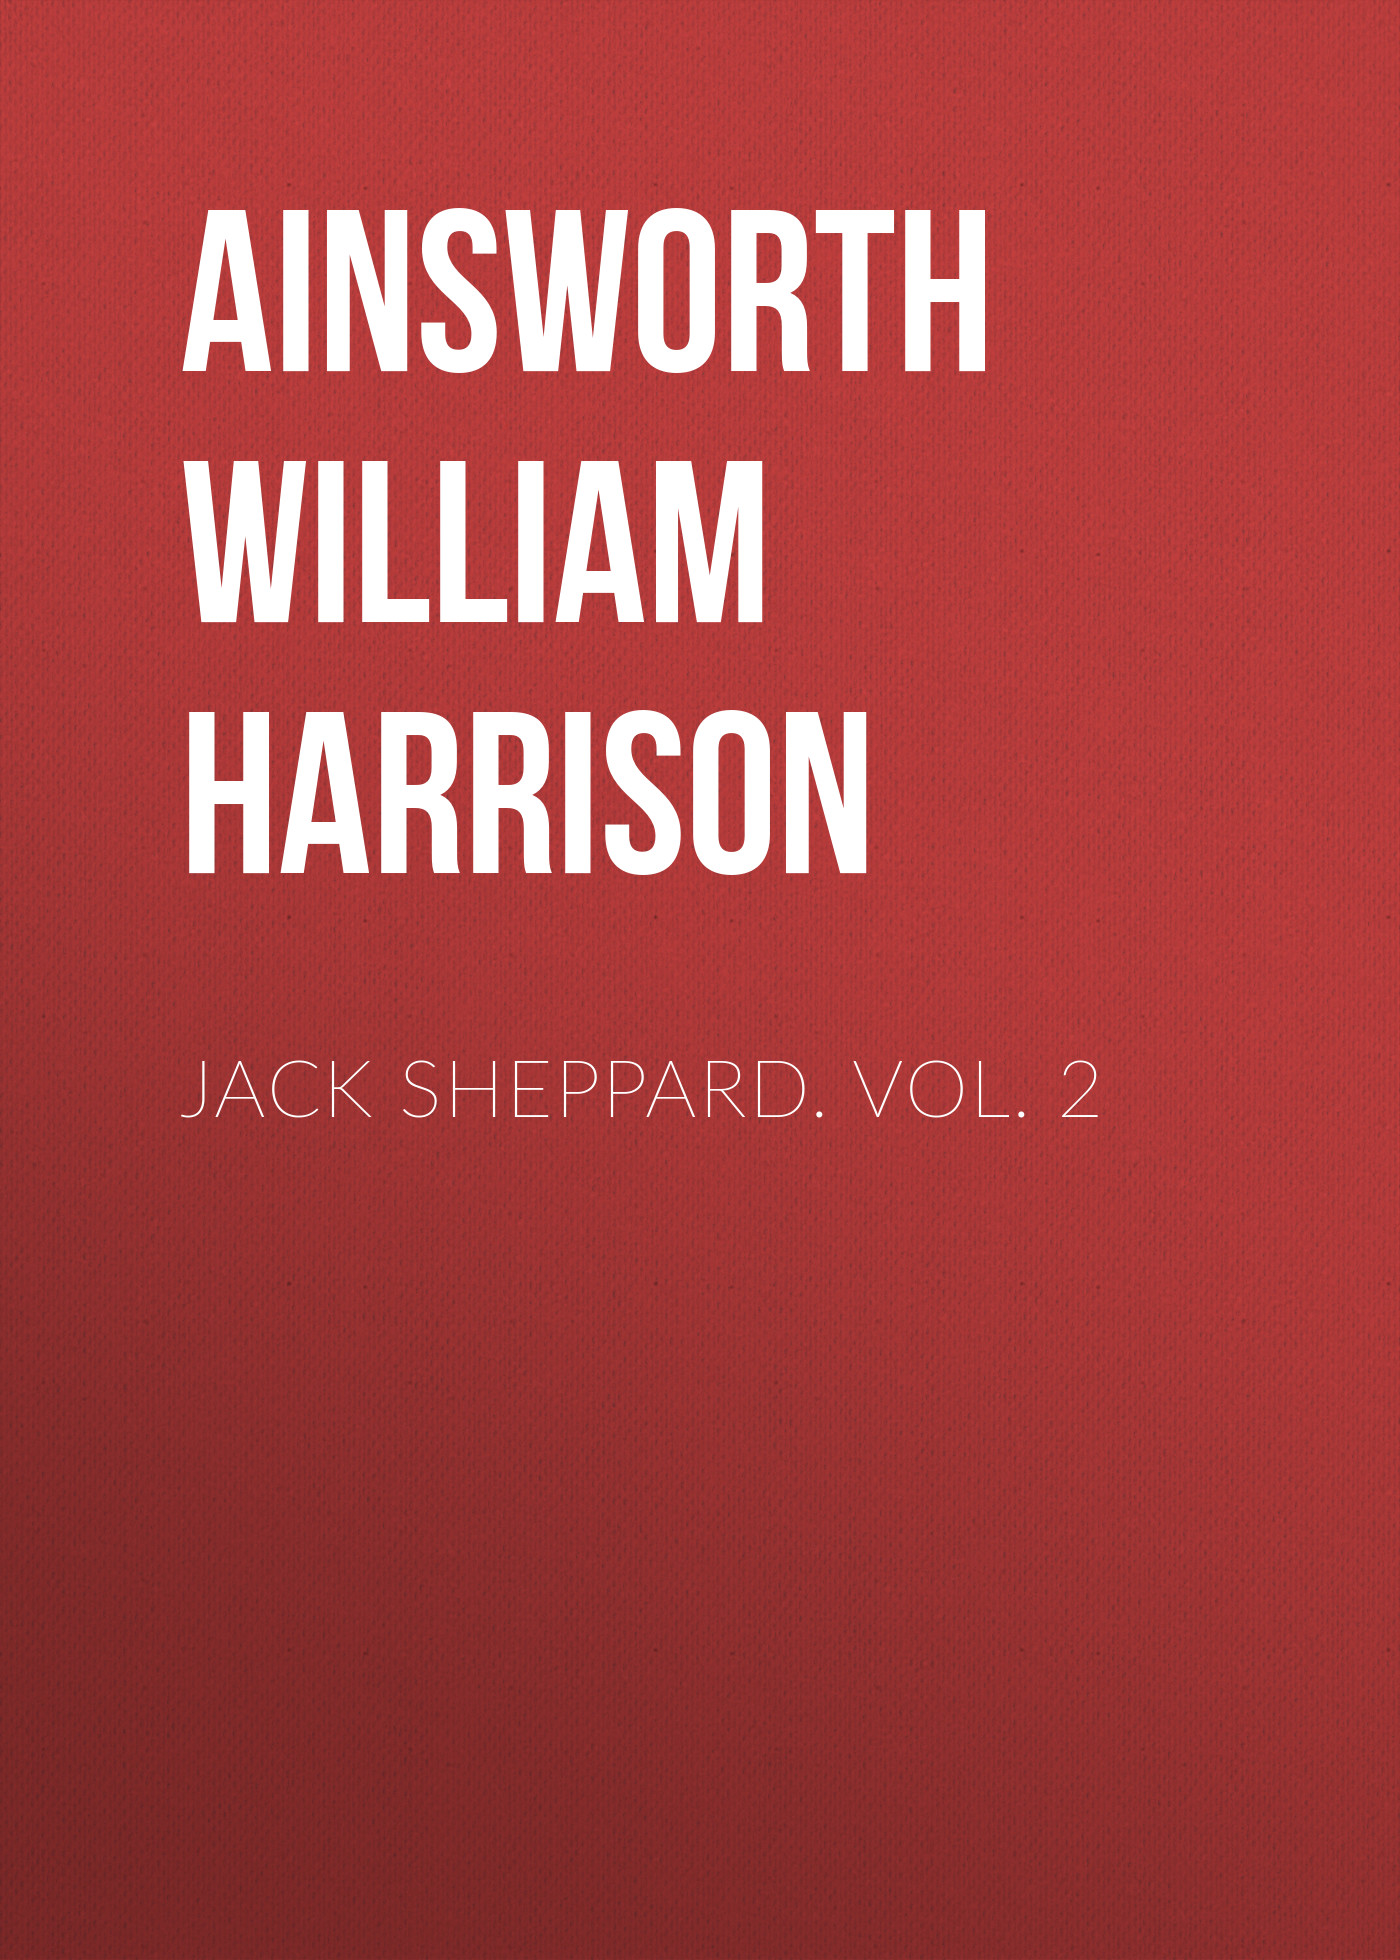 Ainsworth William Harrison Jack Sheppard. Vol. 2 ainsworth william harrison the star chamber an historical romance volume 1